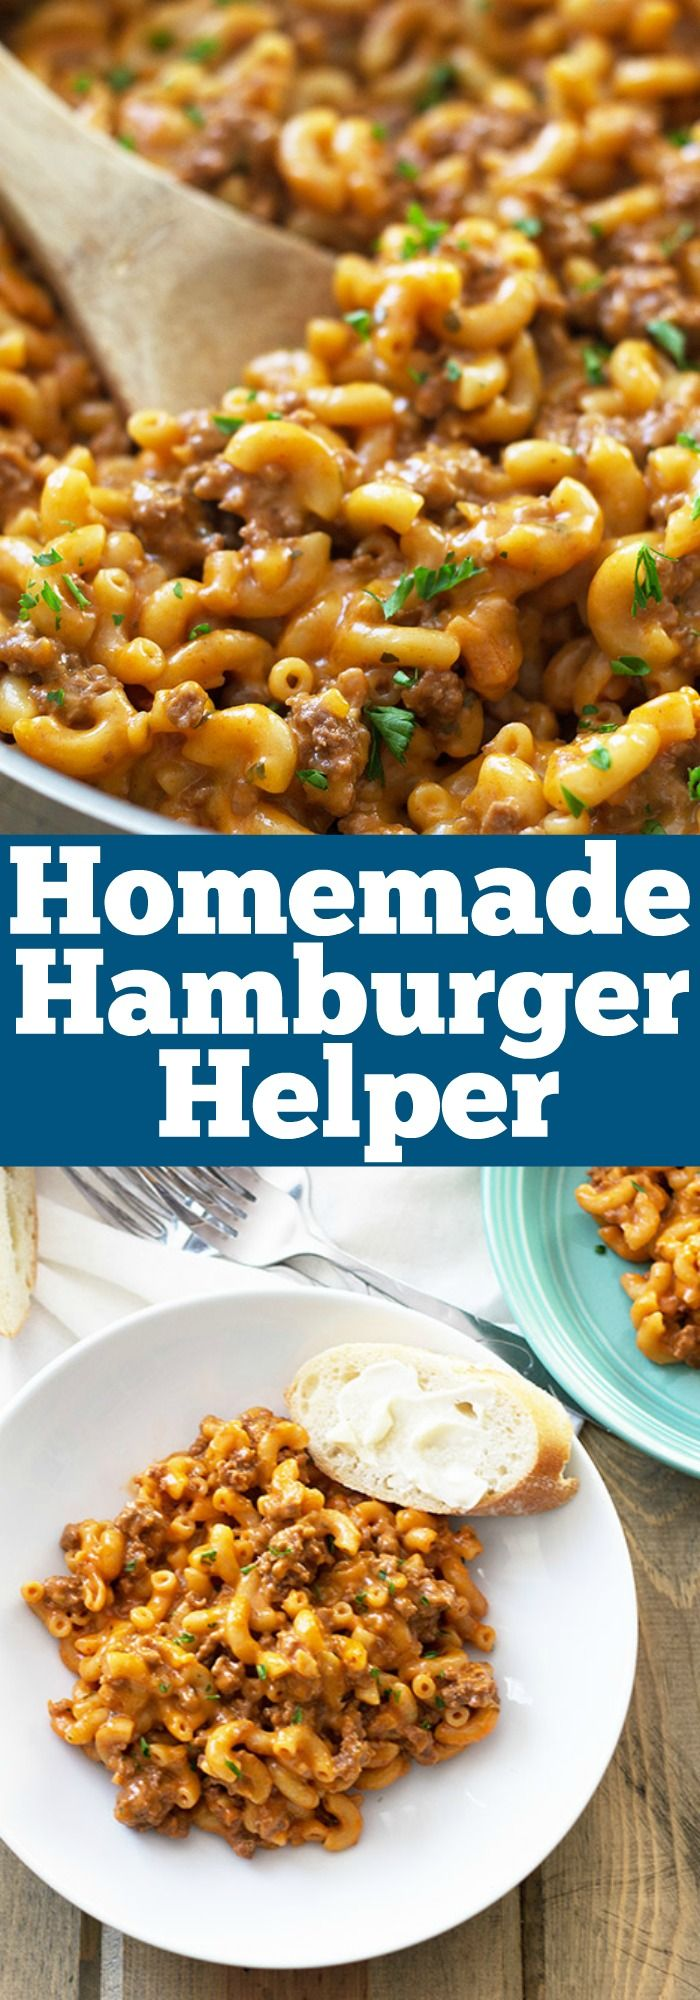 Homemade Hamburger Helper Just As Quick And Easy As The